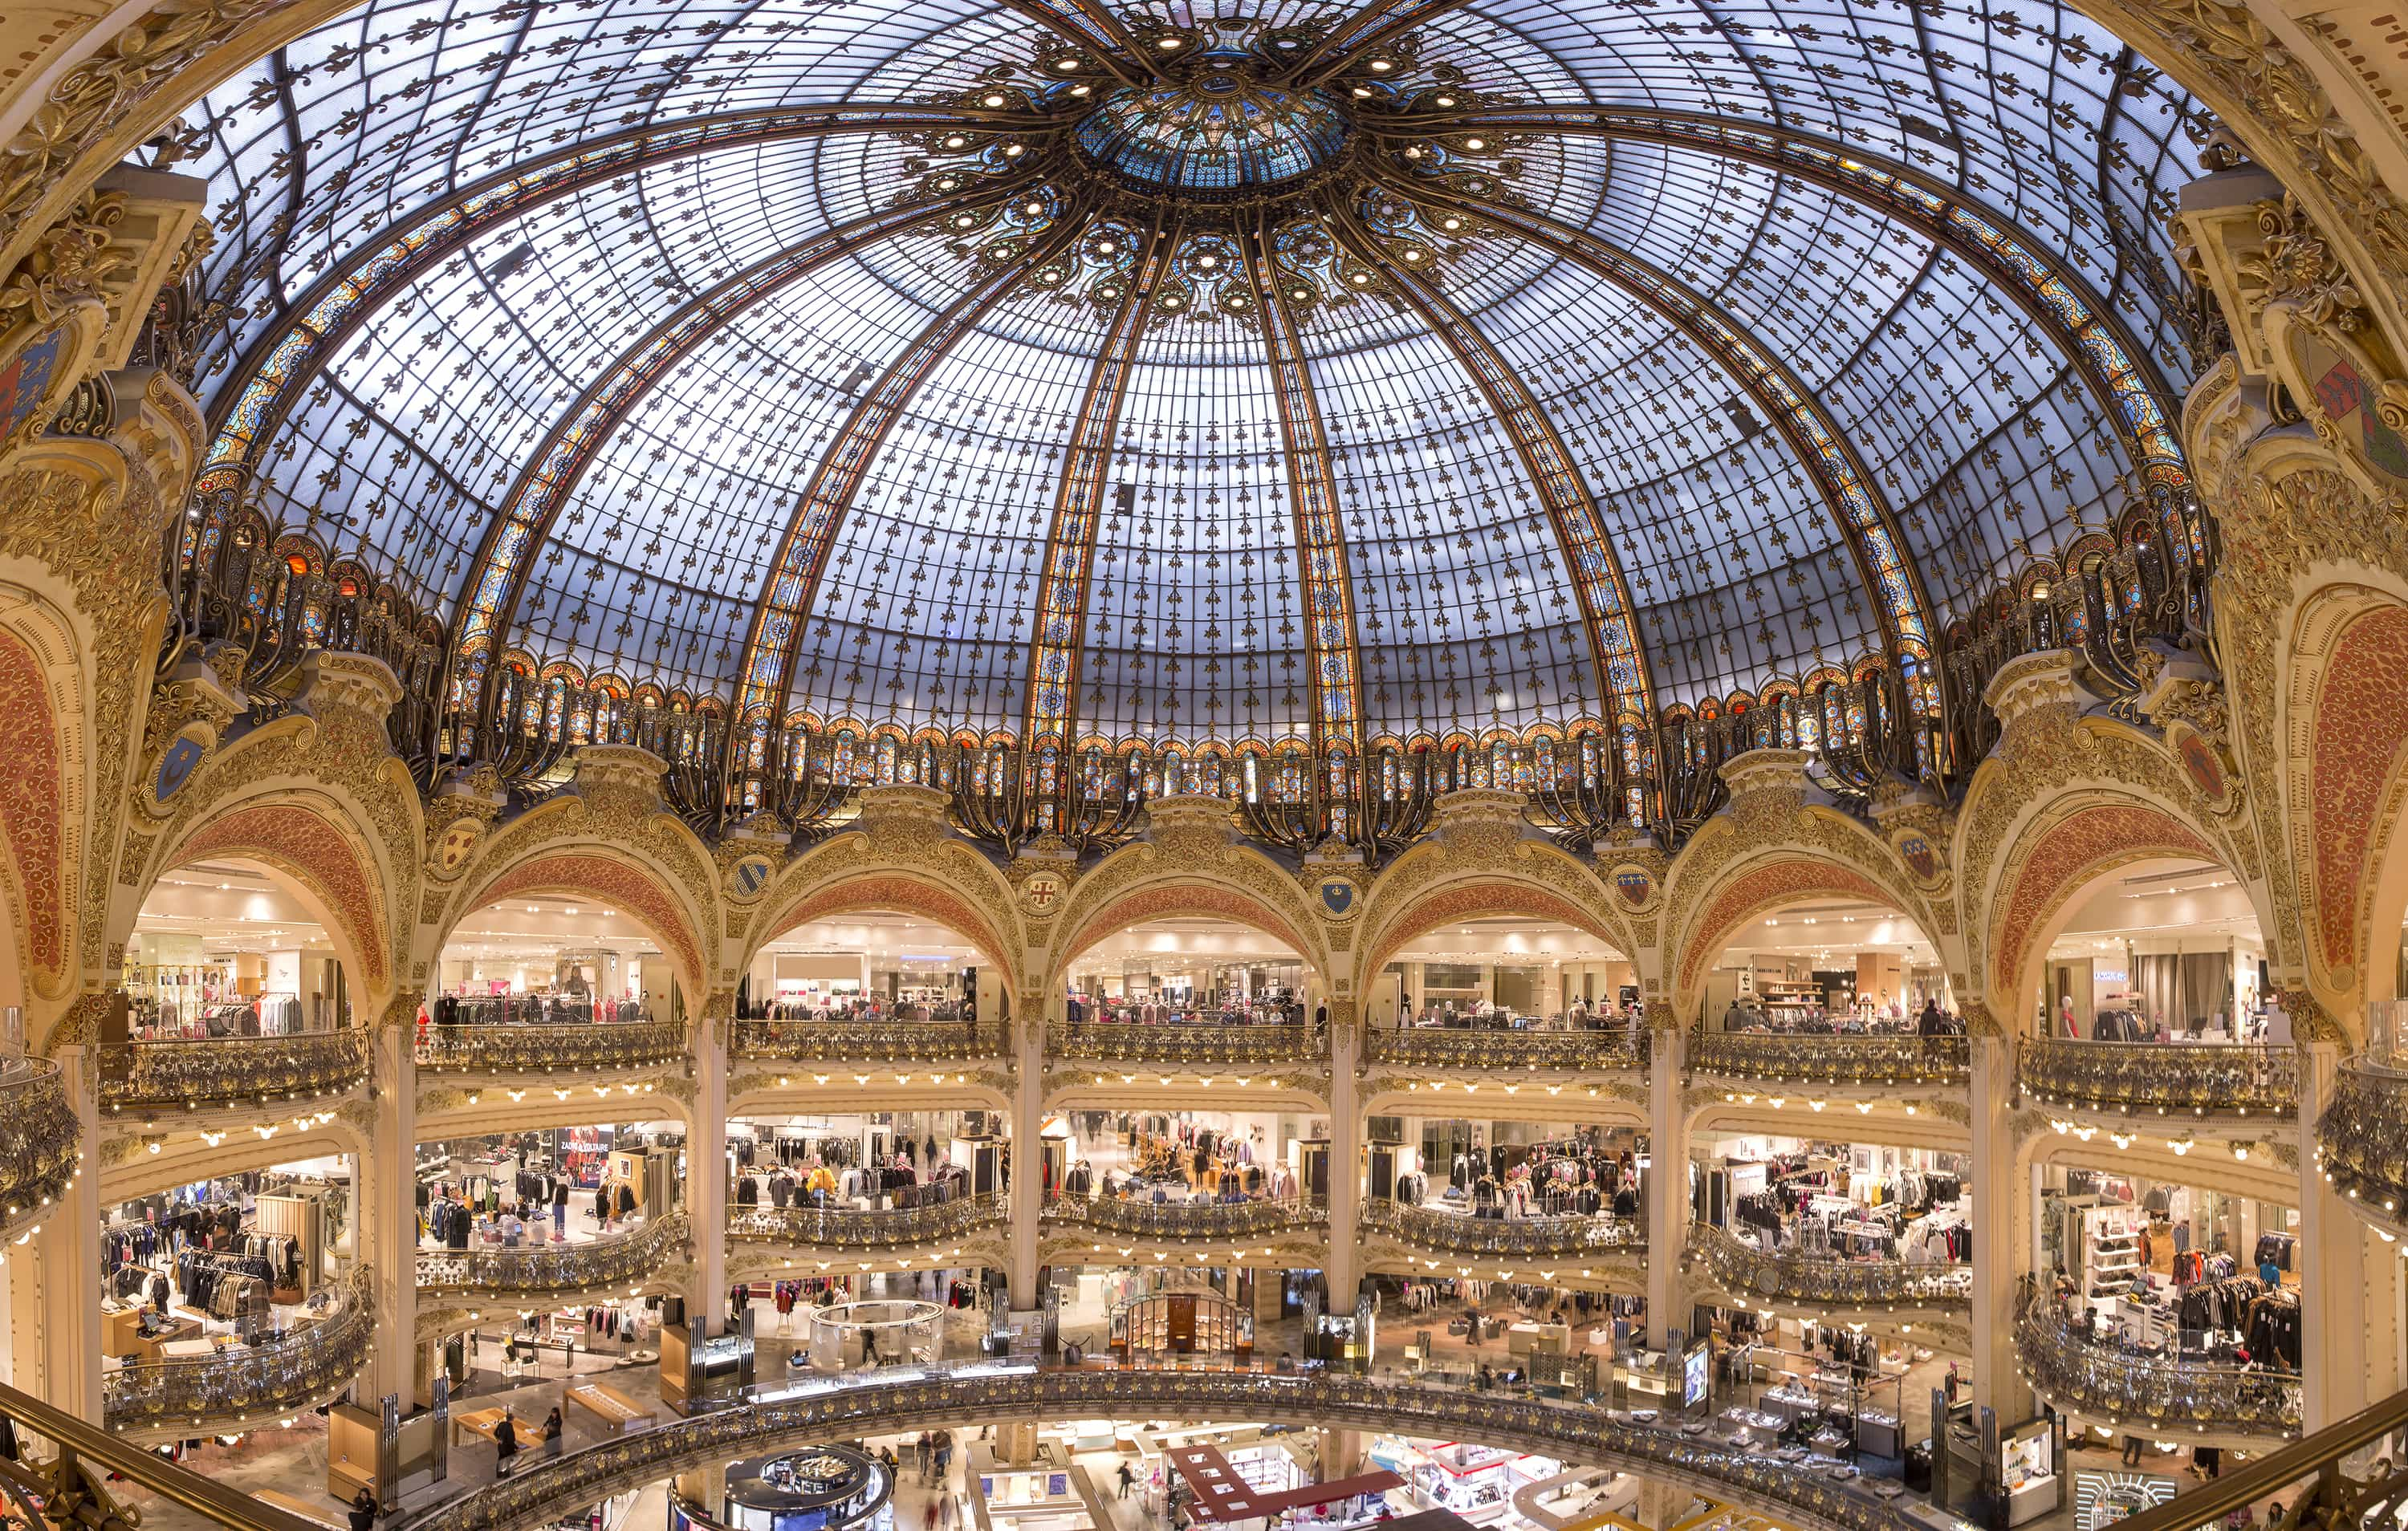 Galeries Lafayette: 9 interesting facts about the luxury shopping venue